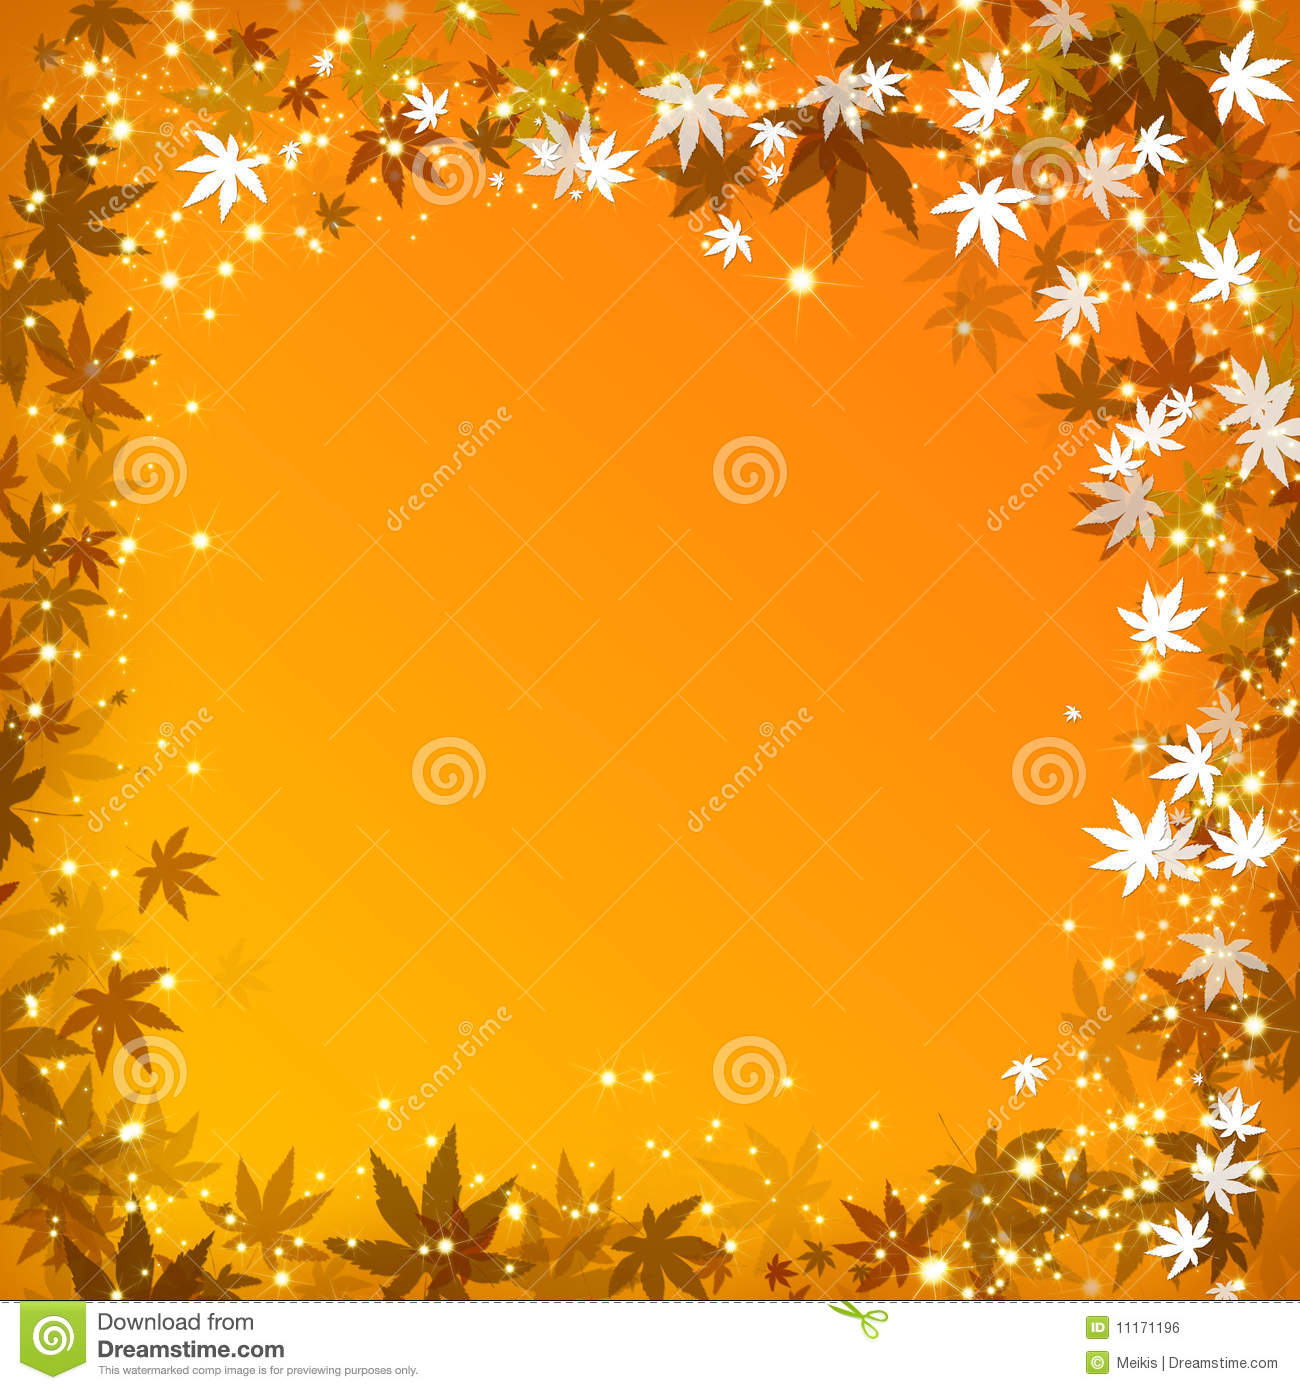 Maple Leaf Wallpaper For Fall Season Abstract Autumn Leaves Golden Background Royalty Free